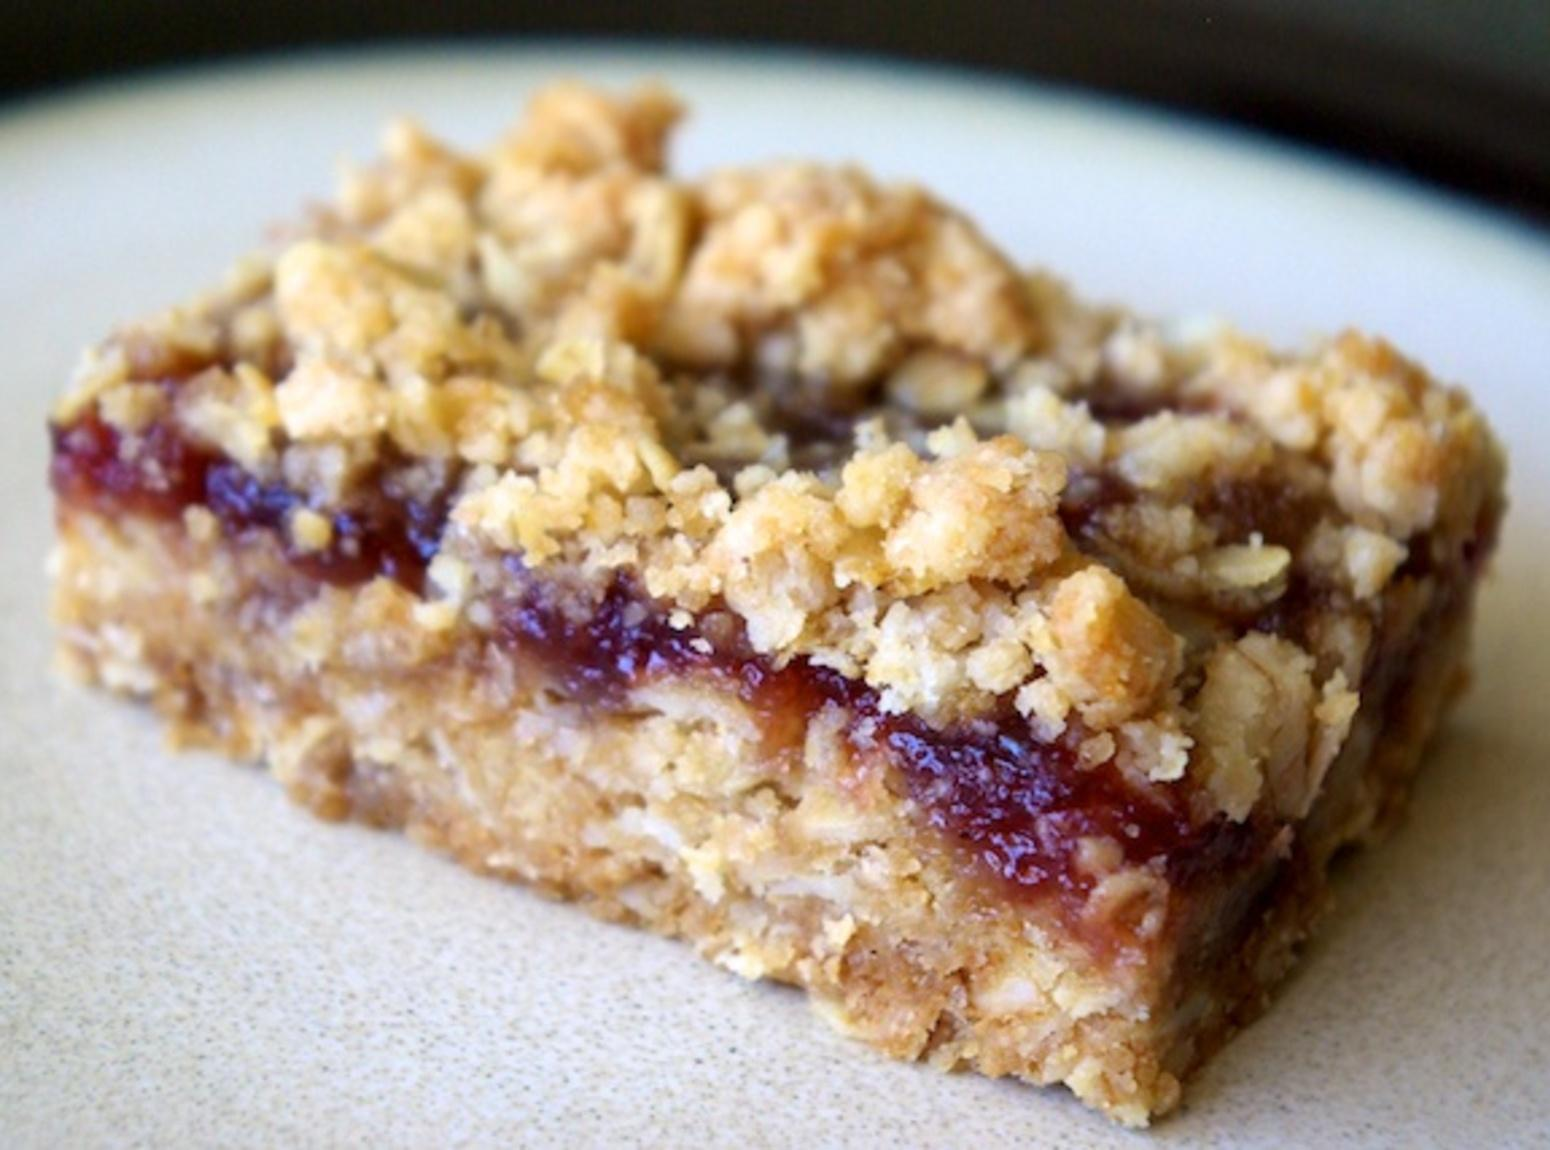 Strawberry Filled Oatmeal Bars Recipe